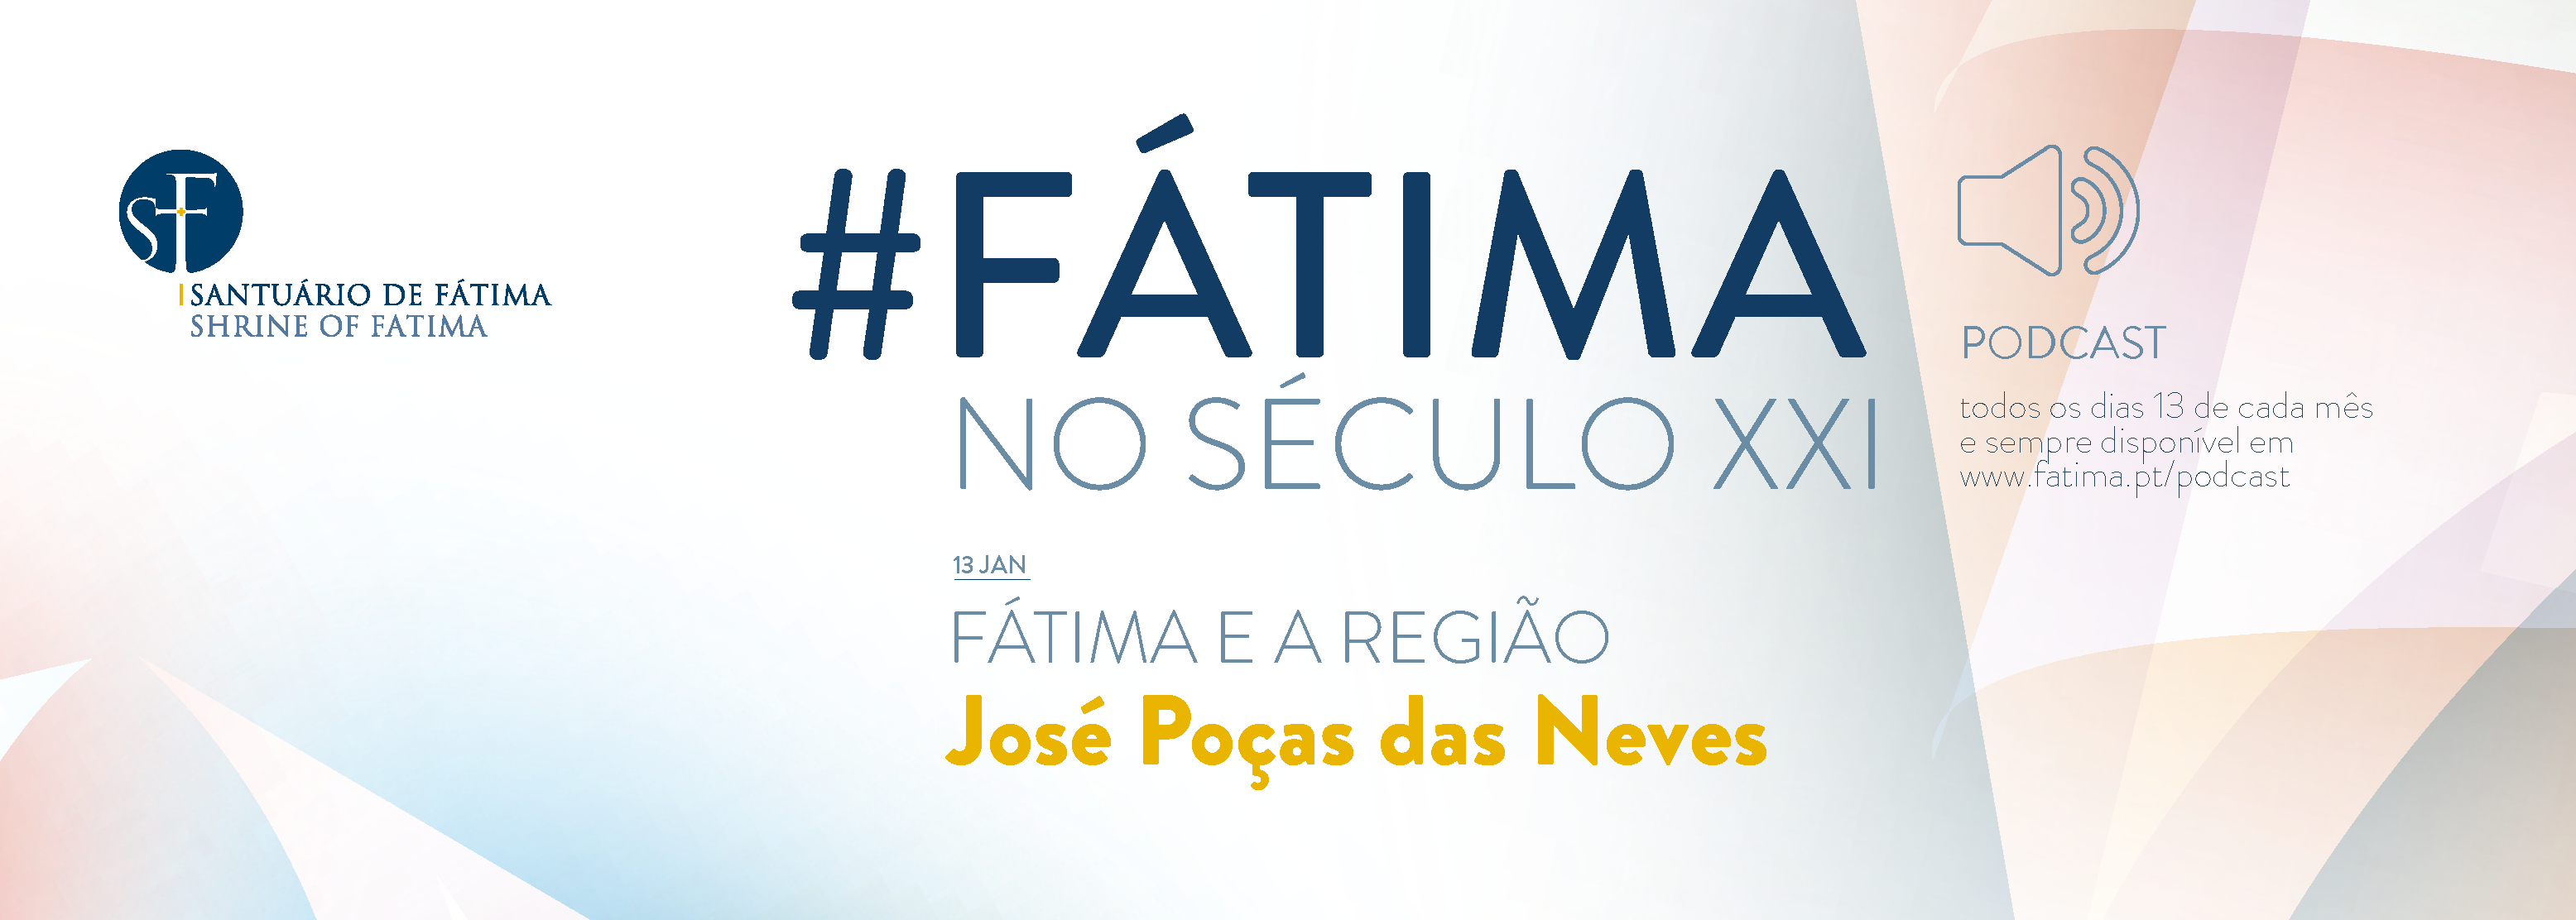 Banner_pocas_das_Neves.png